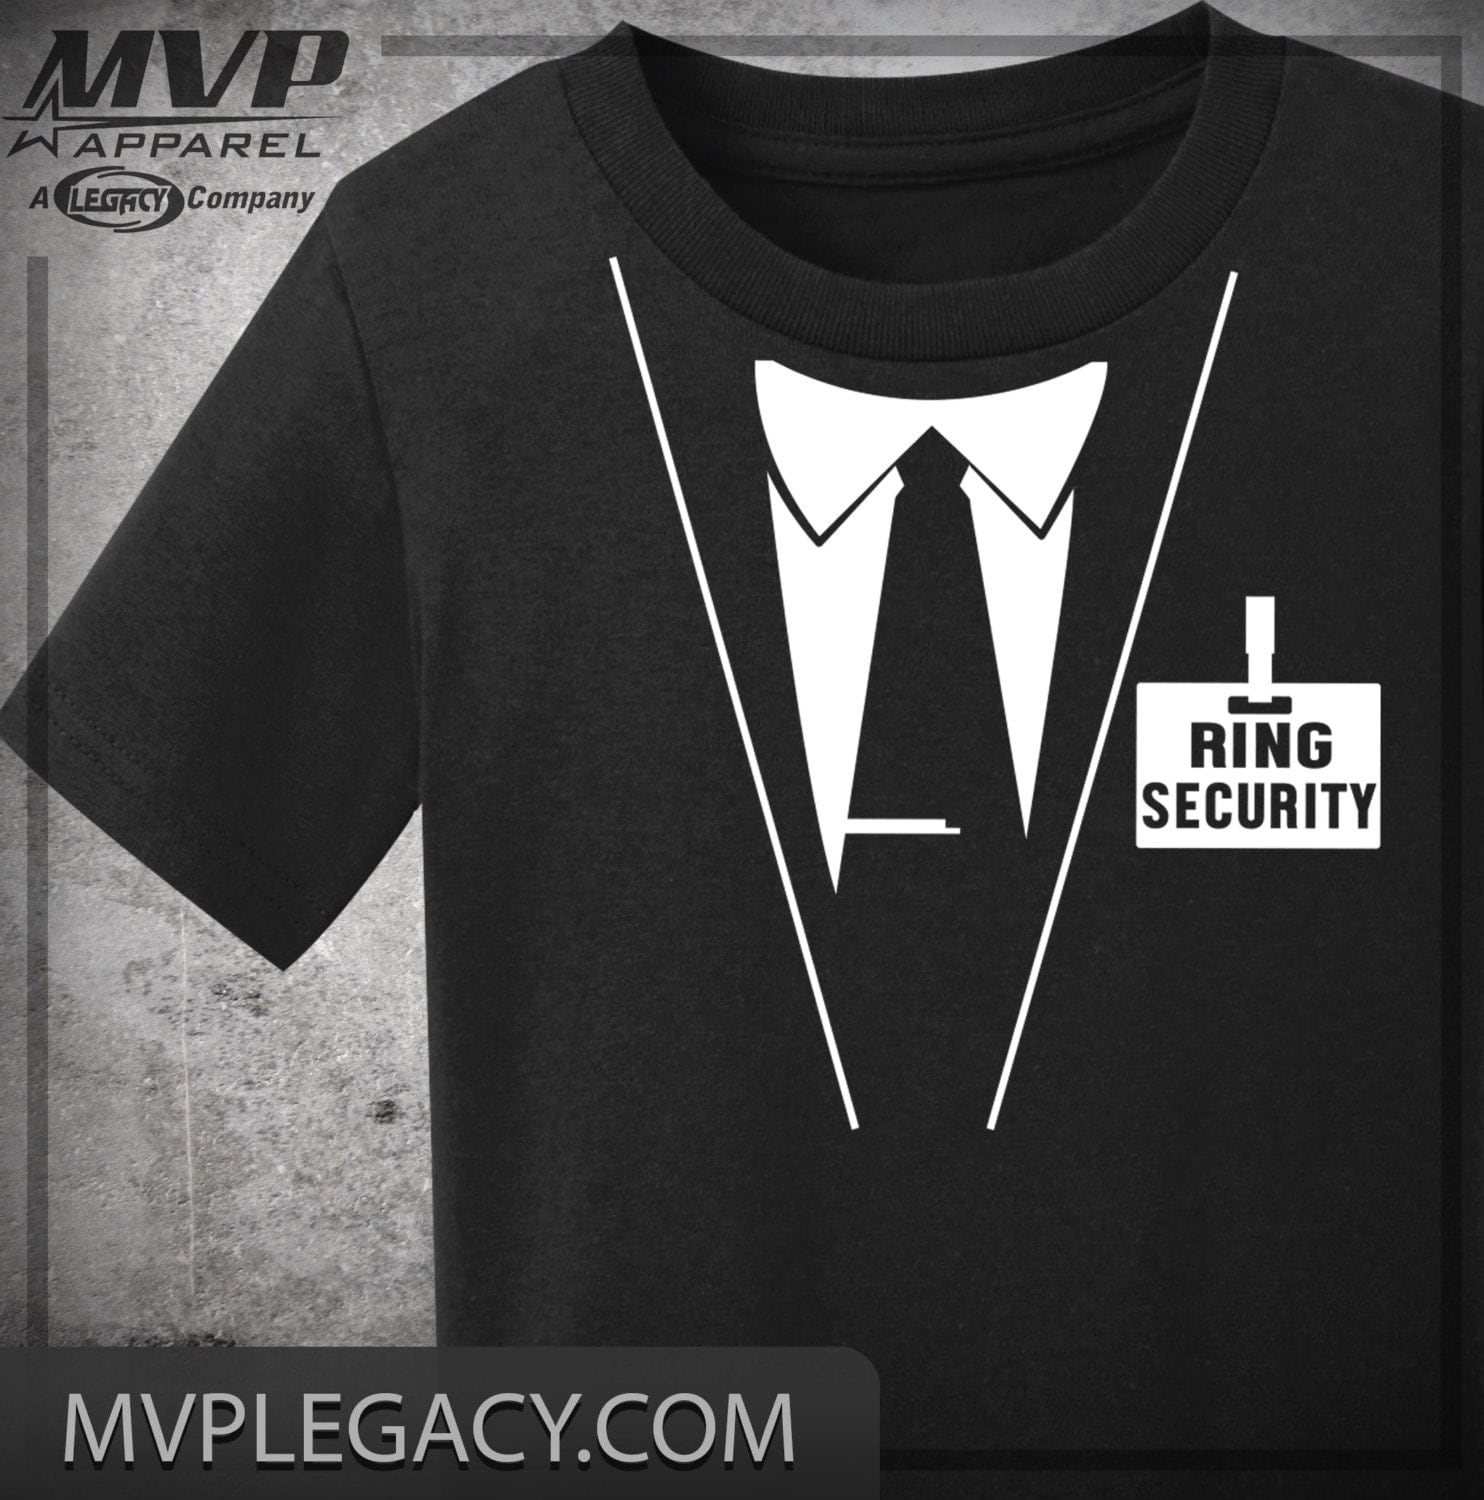 Ring Bearer Tee Ring Security Shirt Wedding